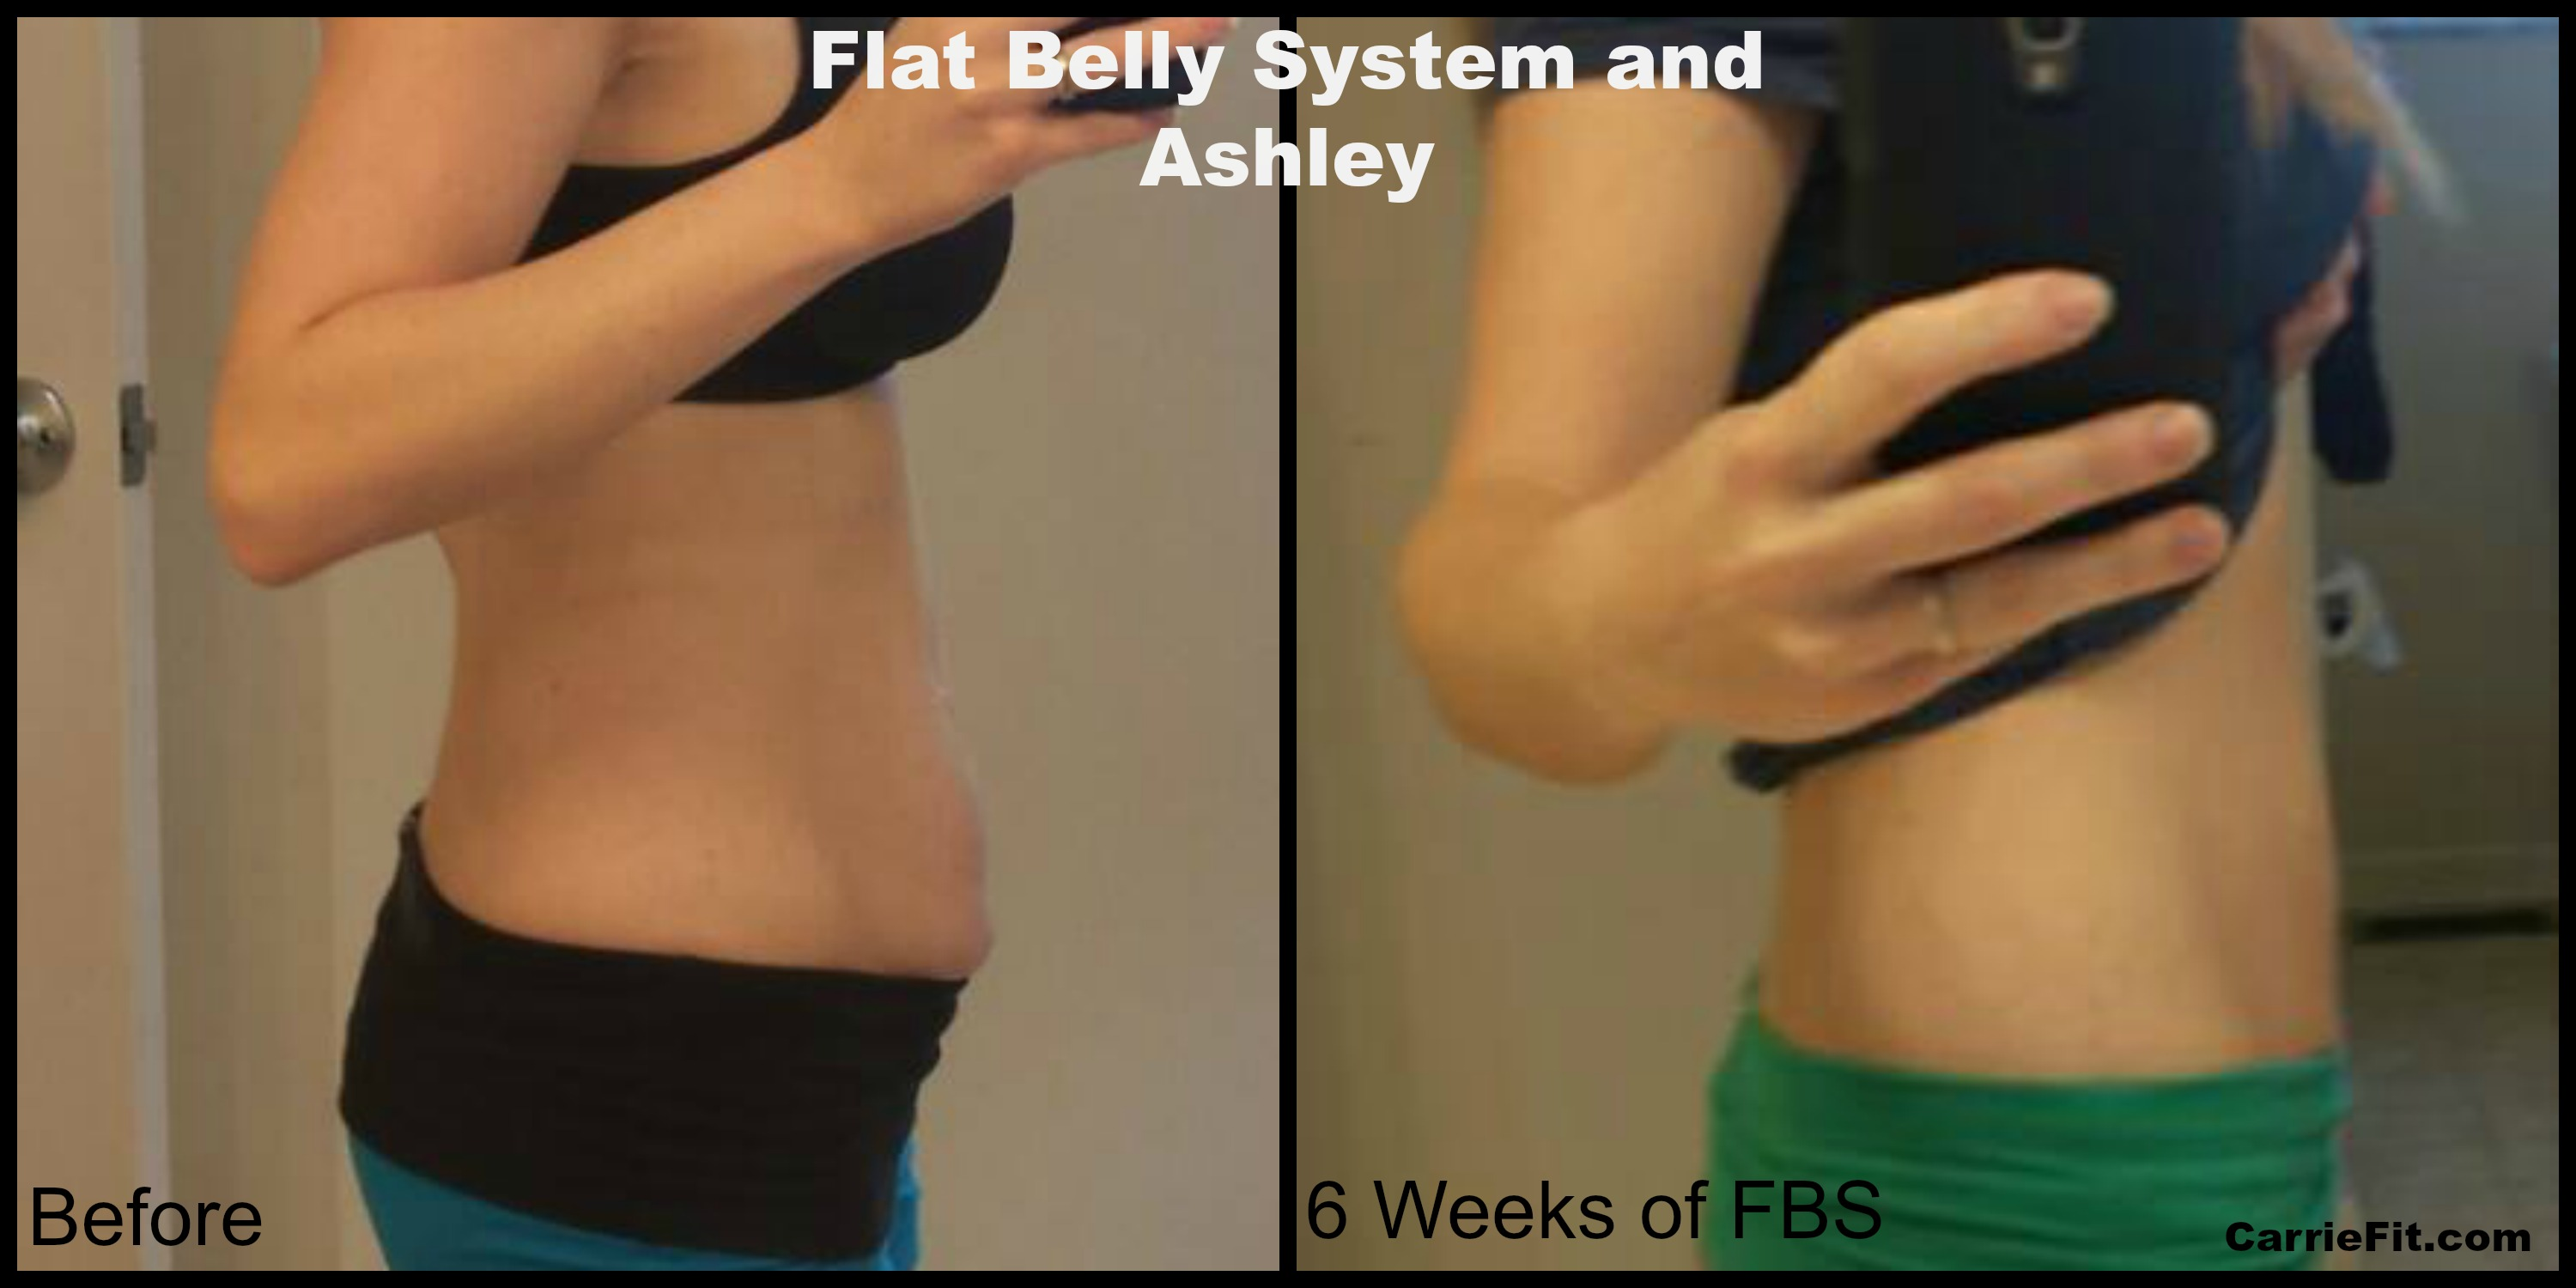 Flat Belly System